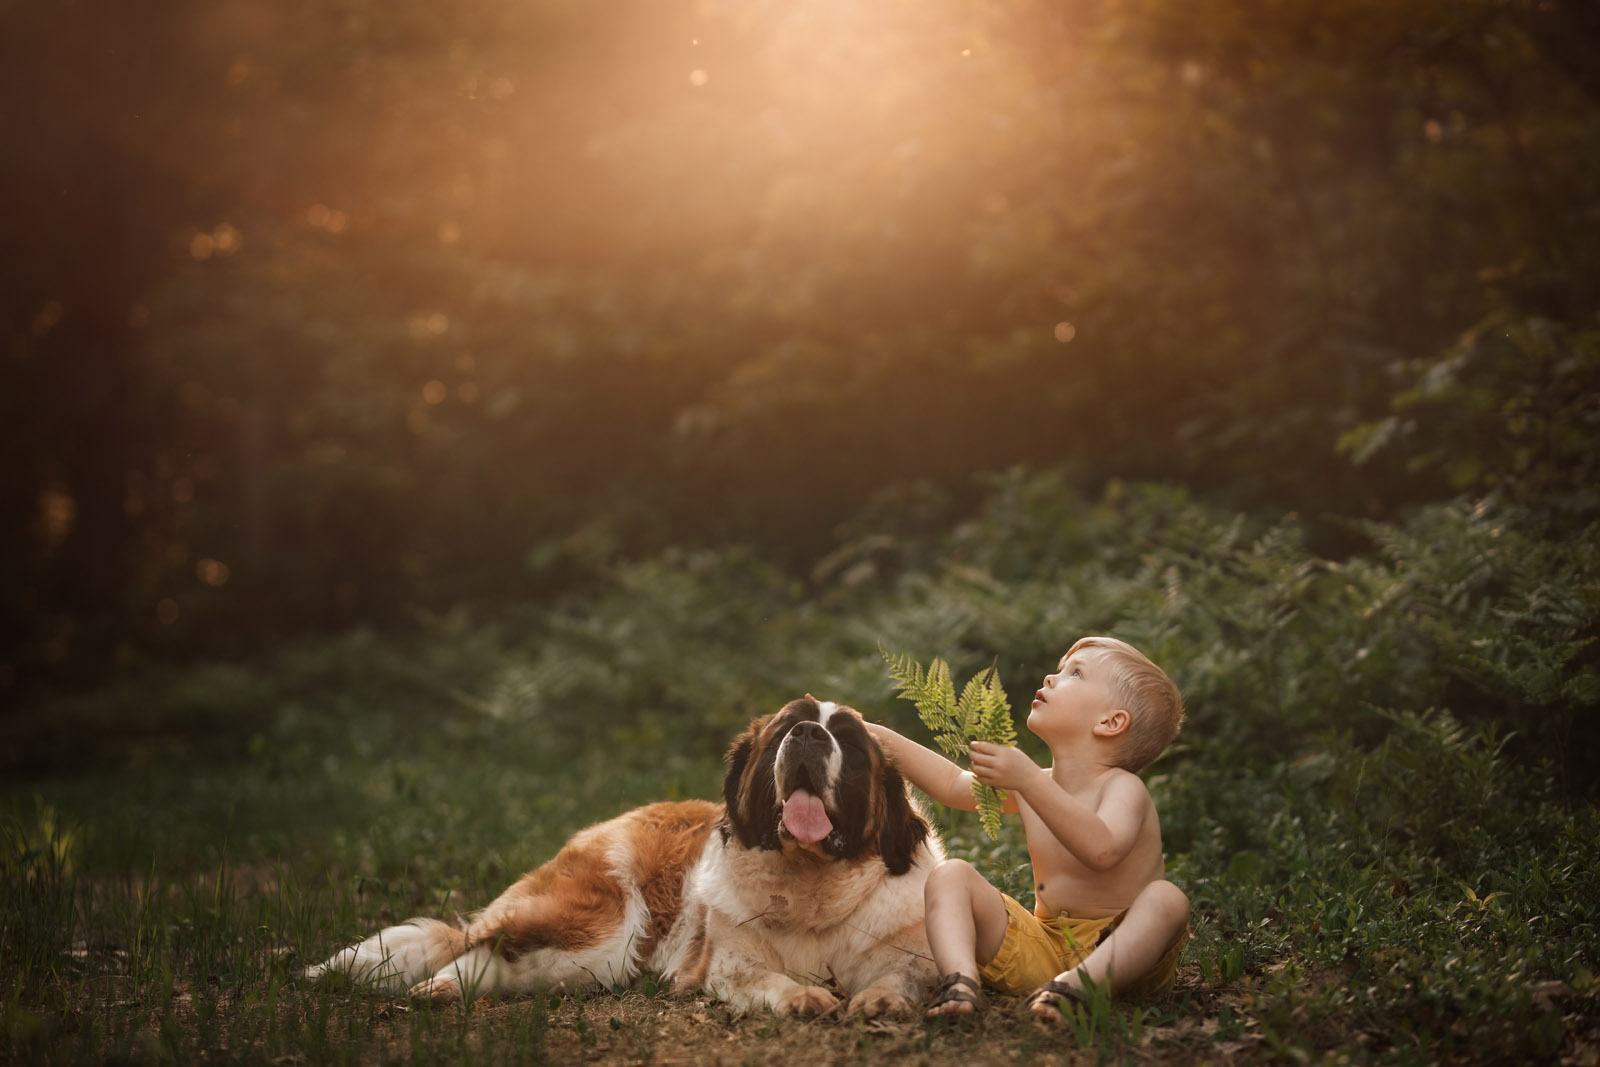 photographing pets large dog and small boy in warm light st bernard by meg loeks